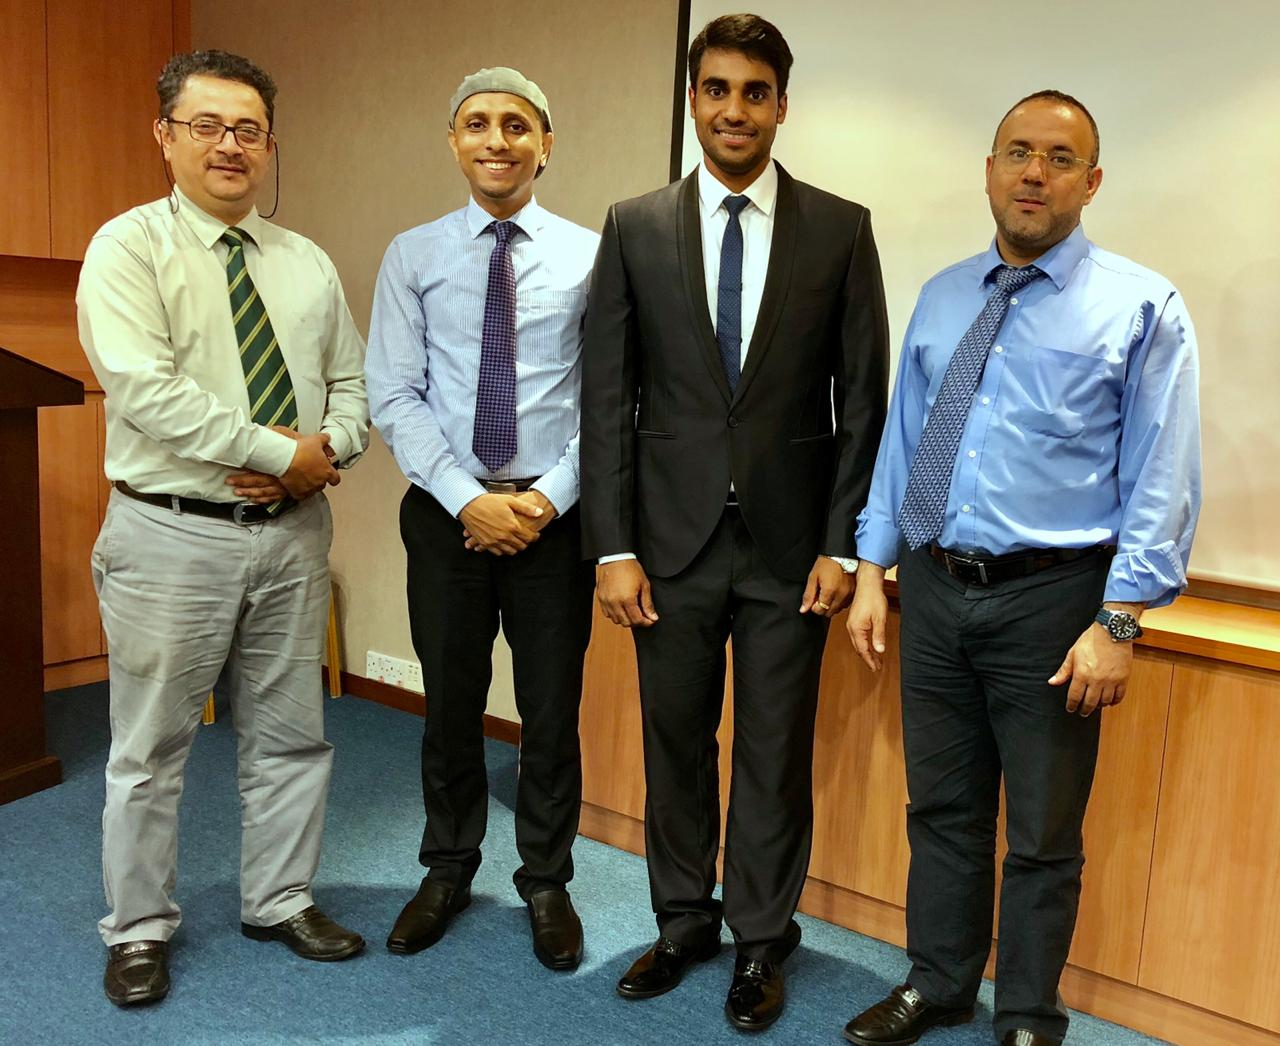 PhD Research proposal defence at Lincoln University College, Malaysia